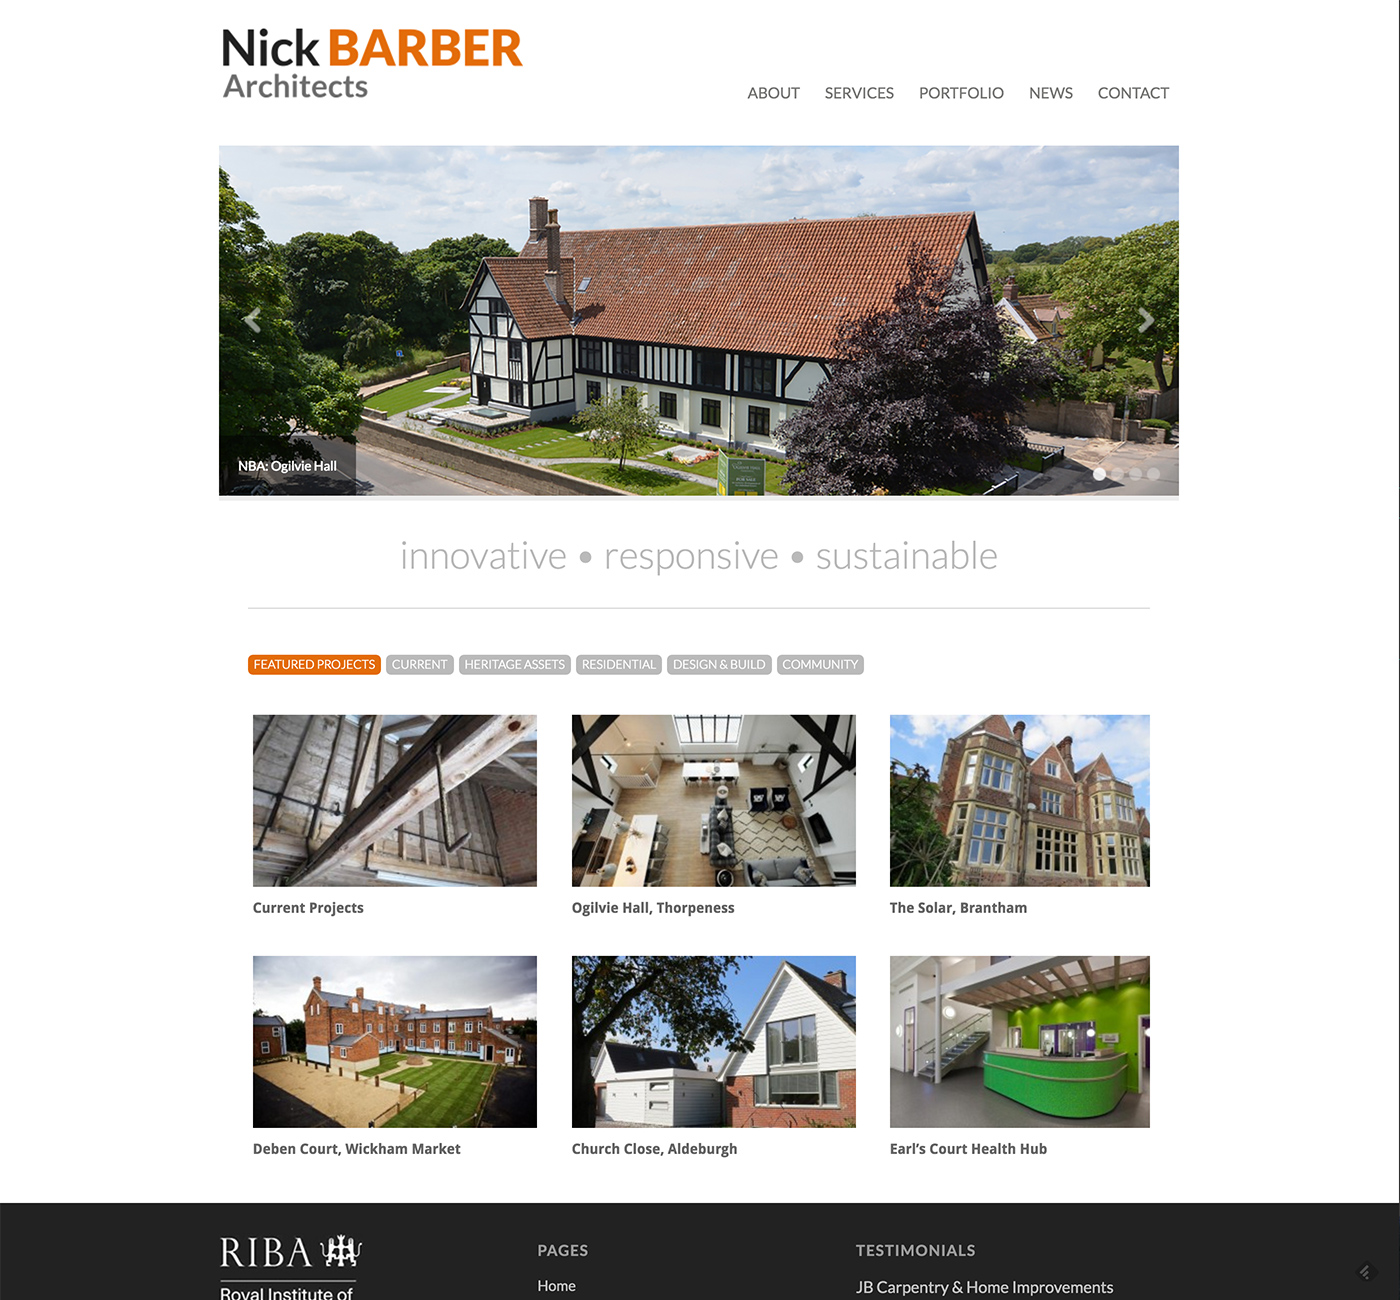 Nick Barber Architects website design